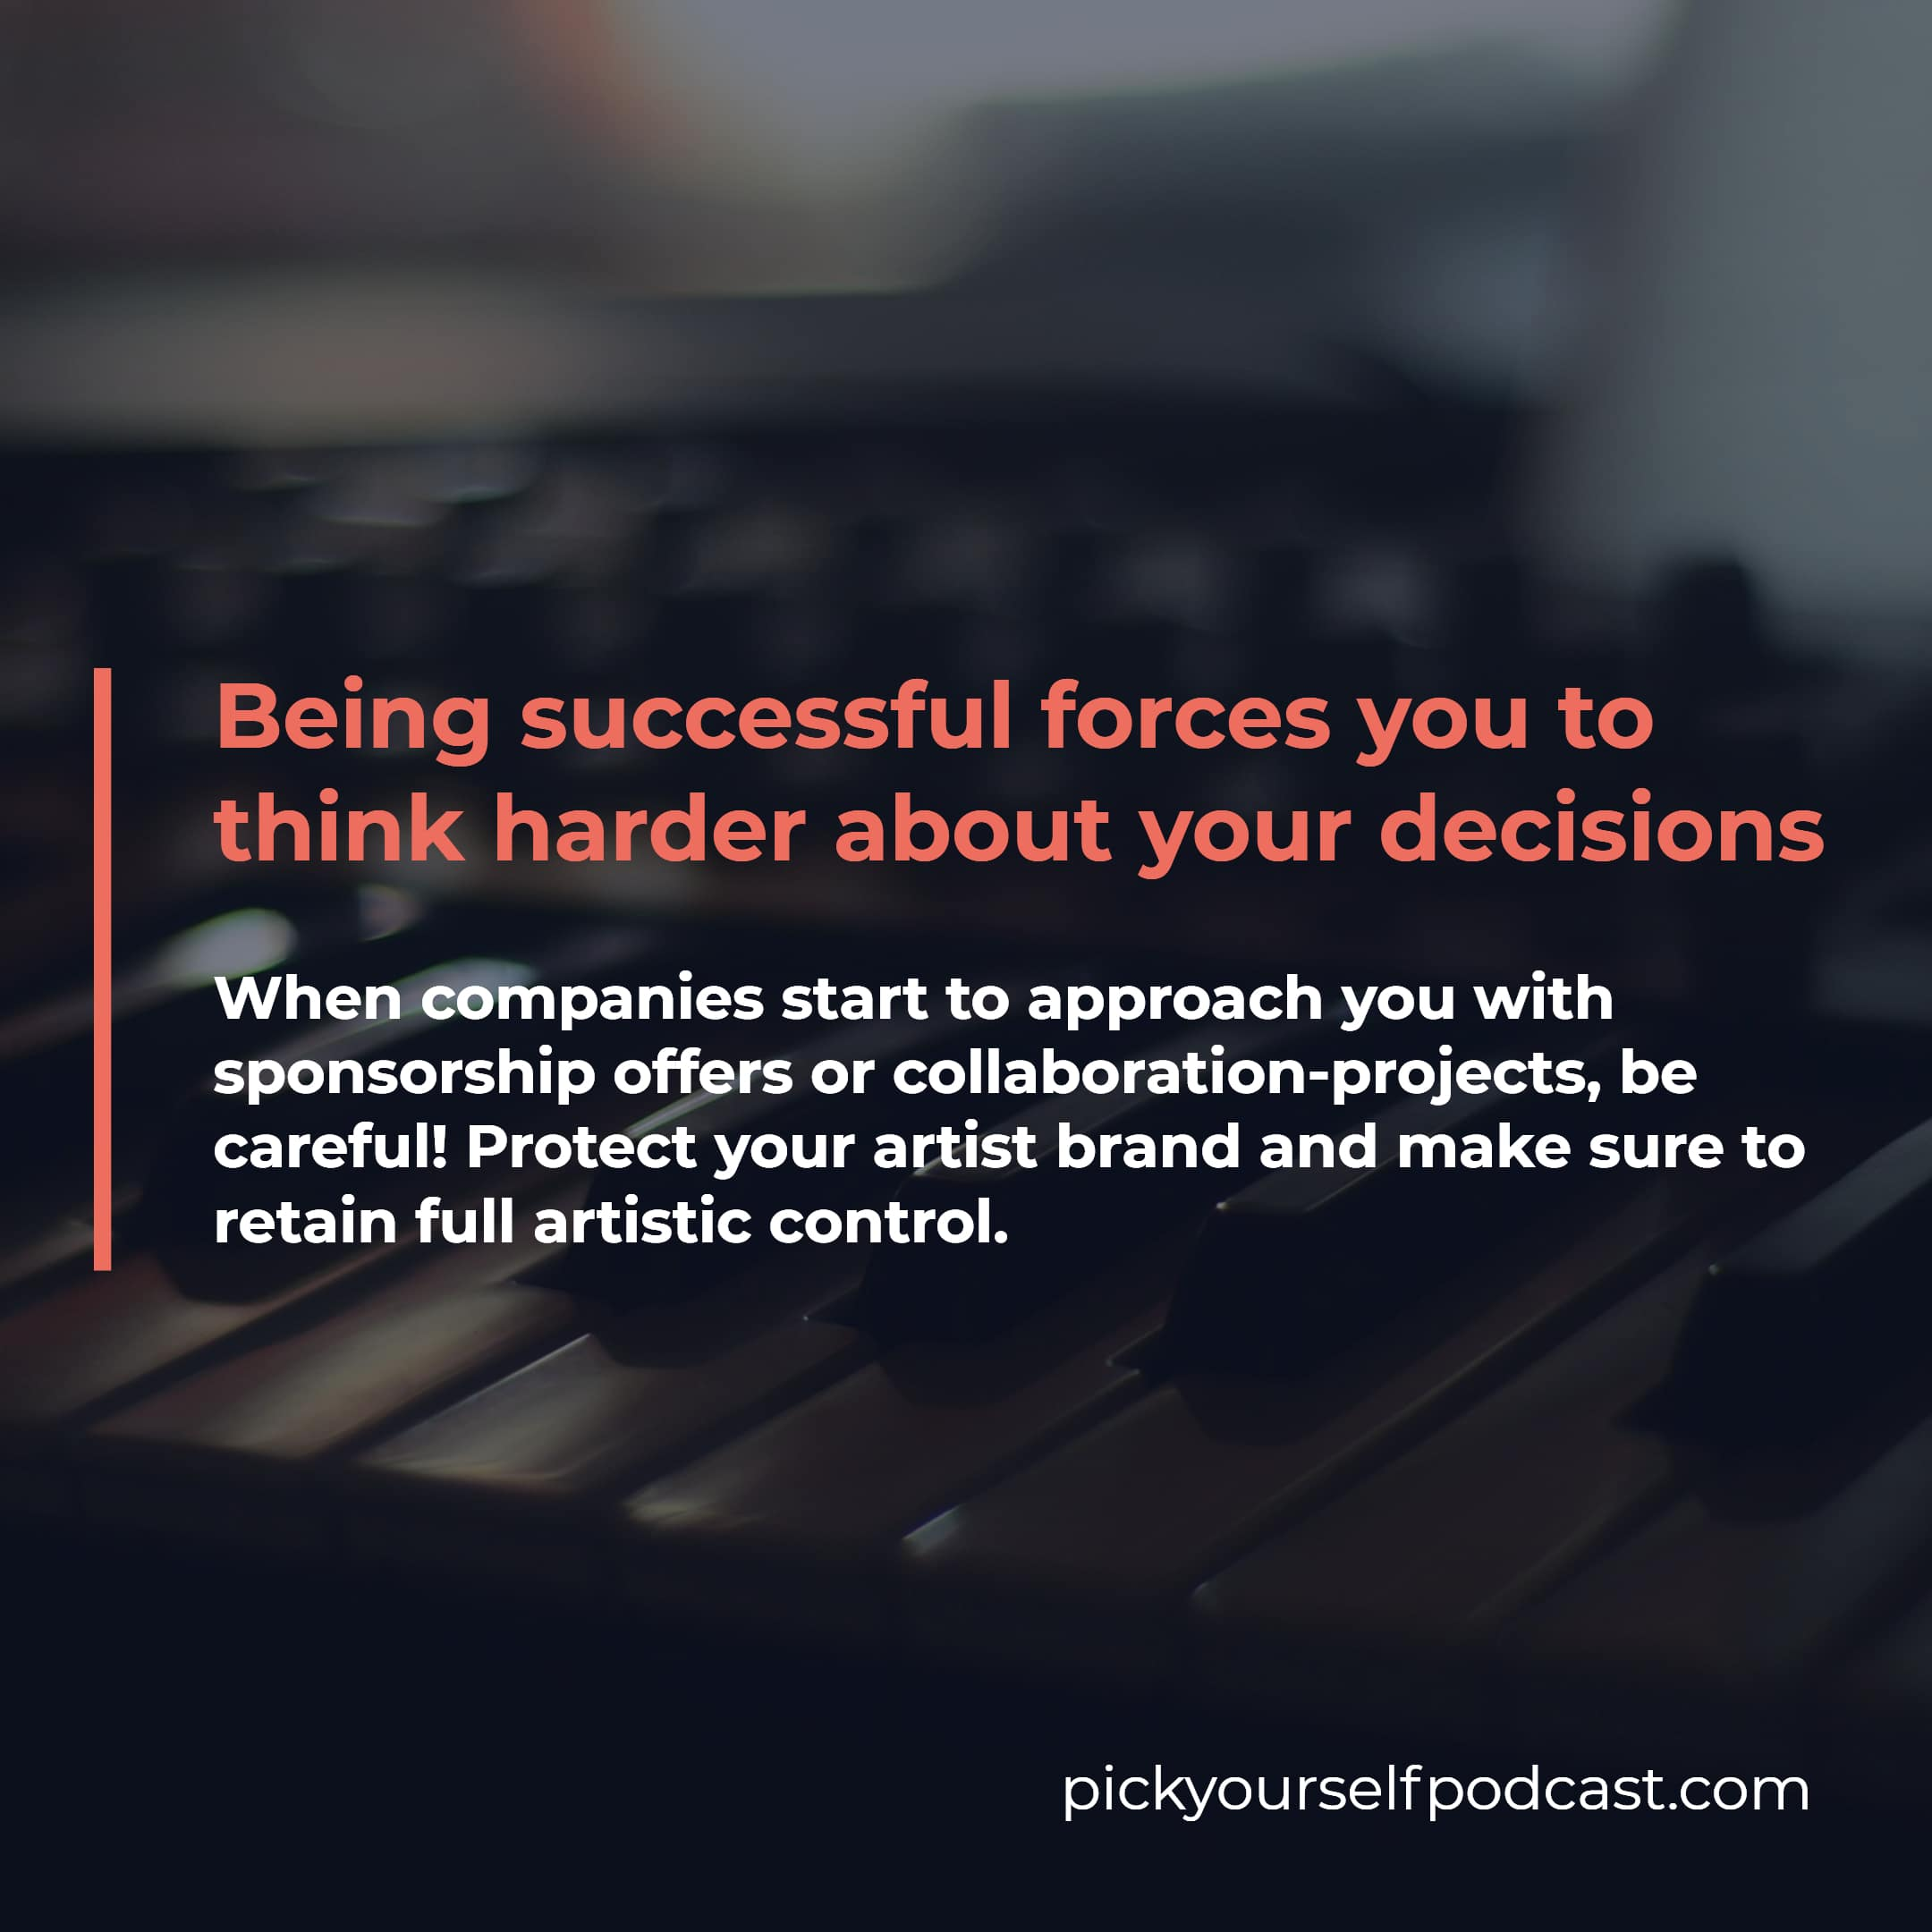 Being successful forces you to think harder about your decisions. Protect your artist brand and make sure you retain artistic control.